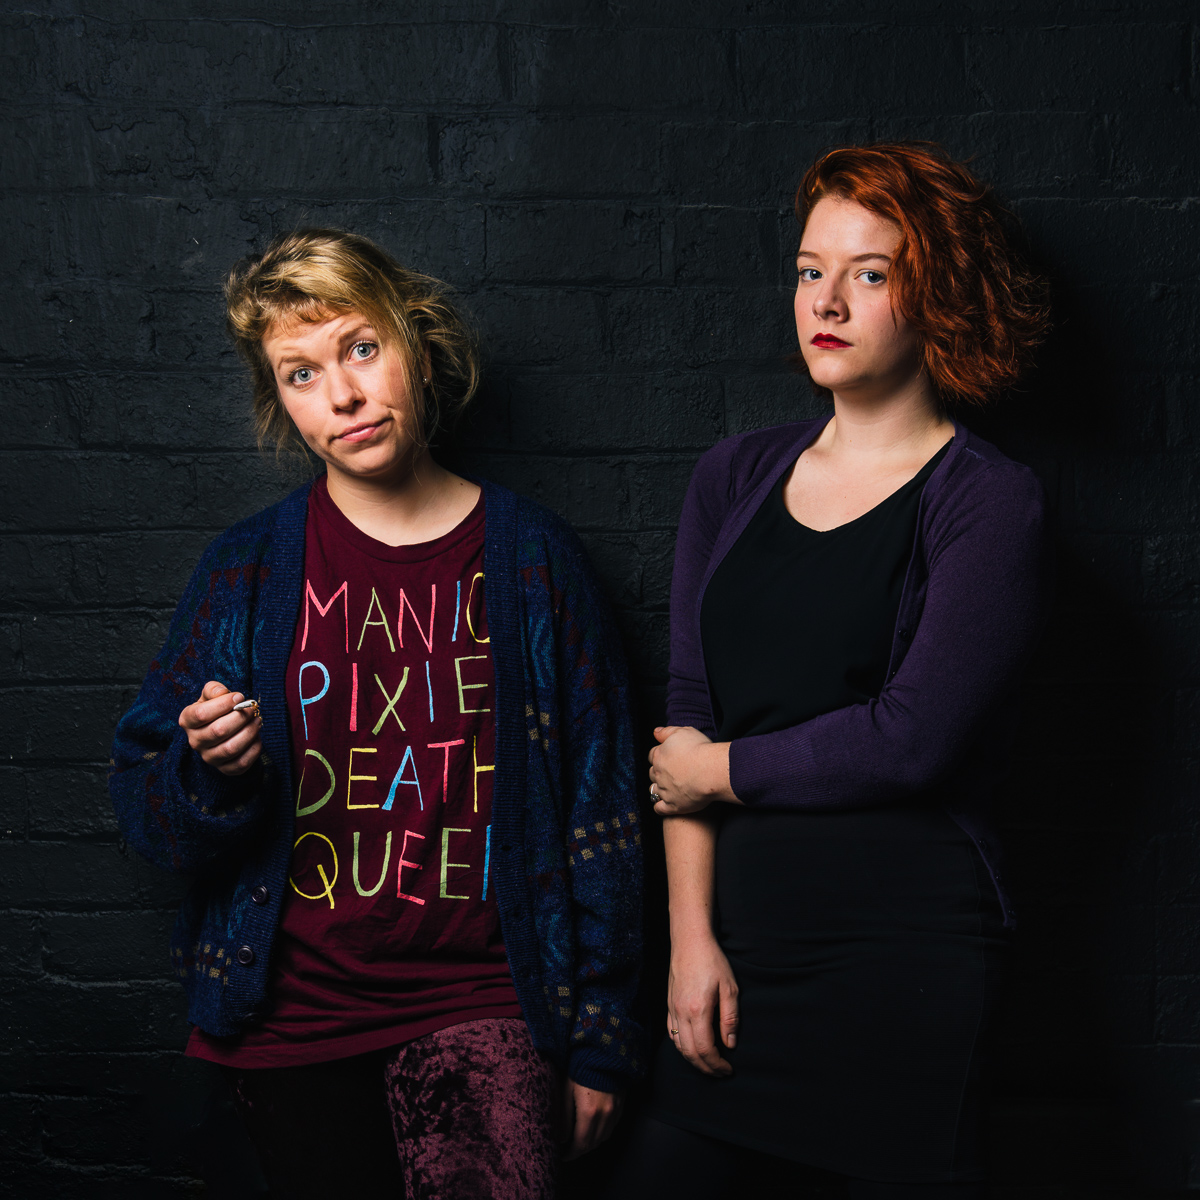 Poster shot for the play featuring actors Madeline Clouston and Camilla Turnbull.